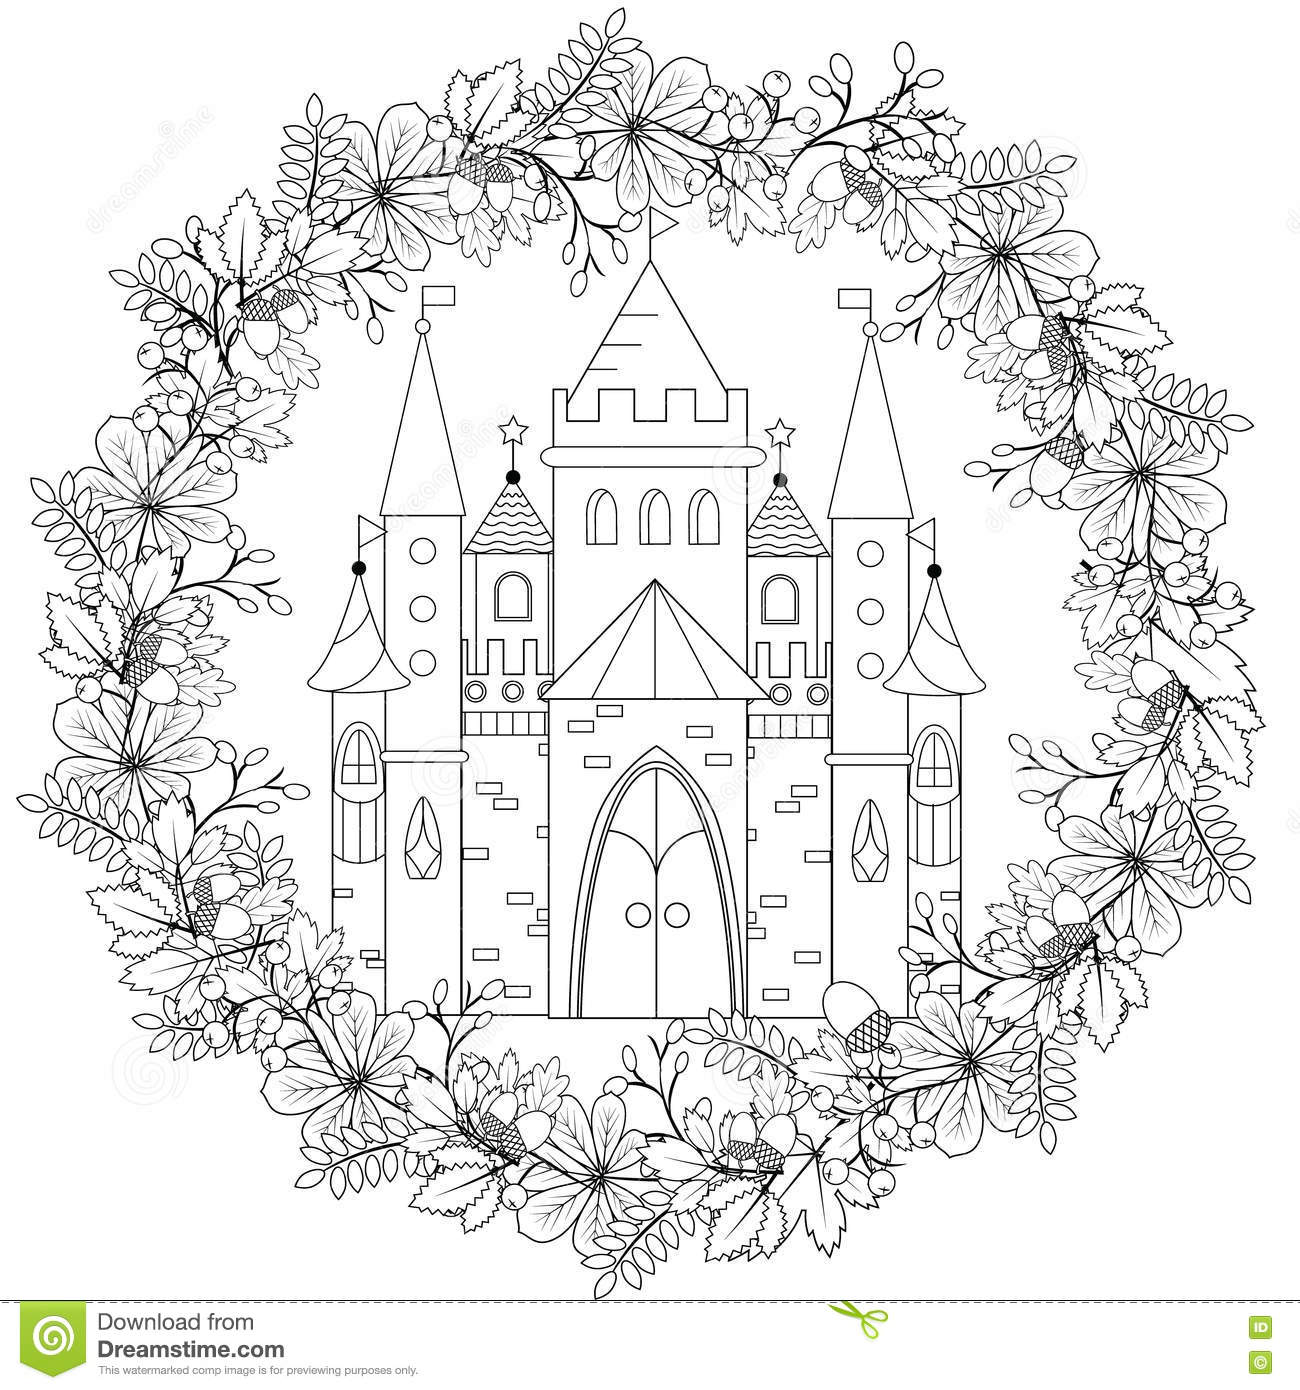 Relaxing Coloring Page With Flowers For Kids And Adults, Art Therapy ...